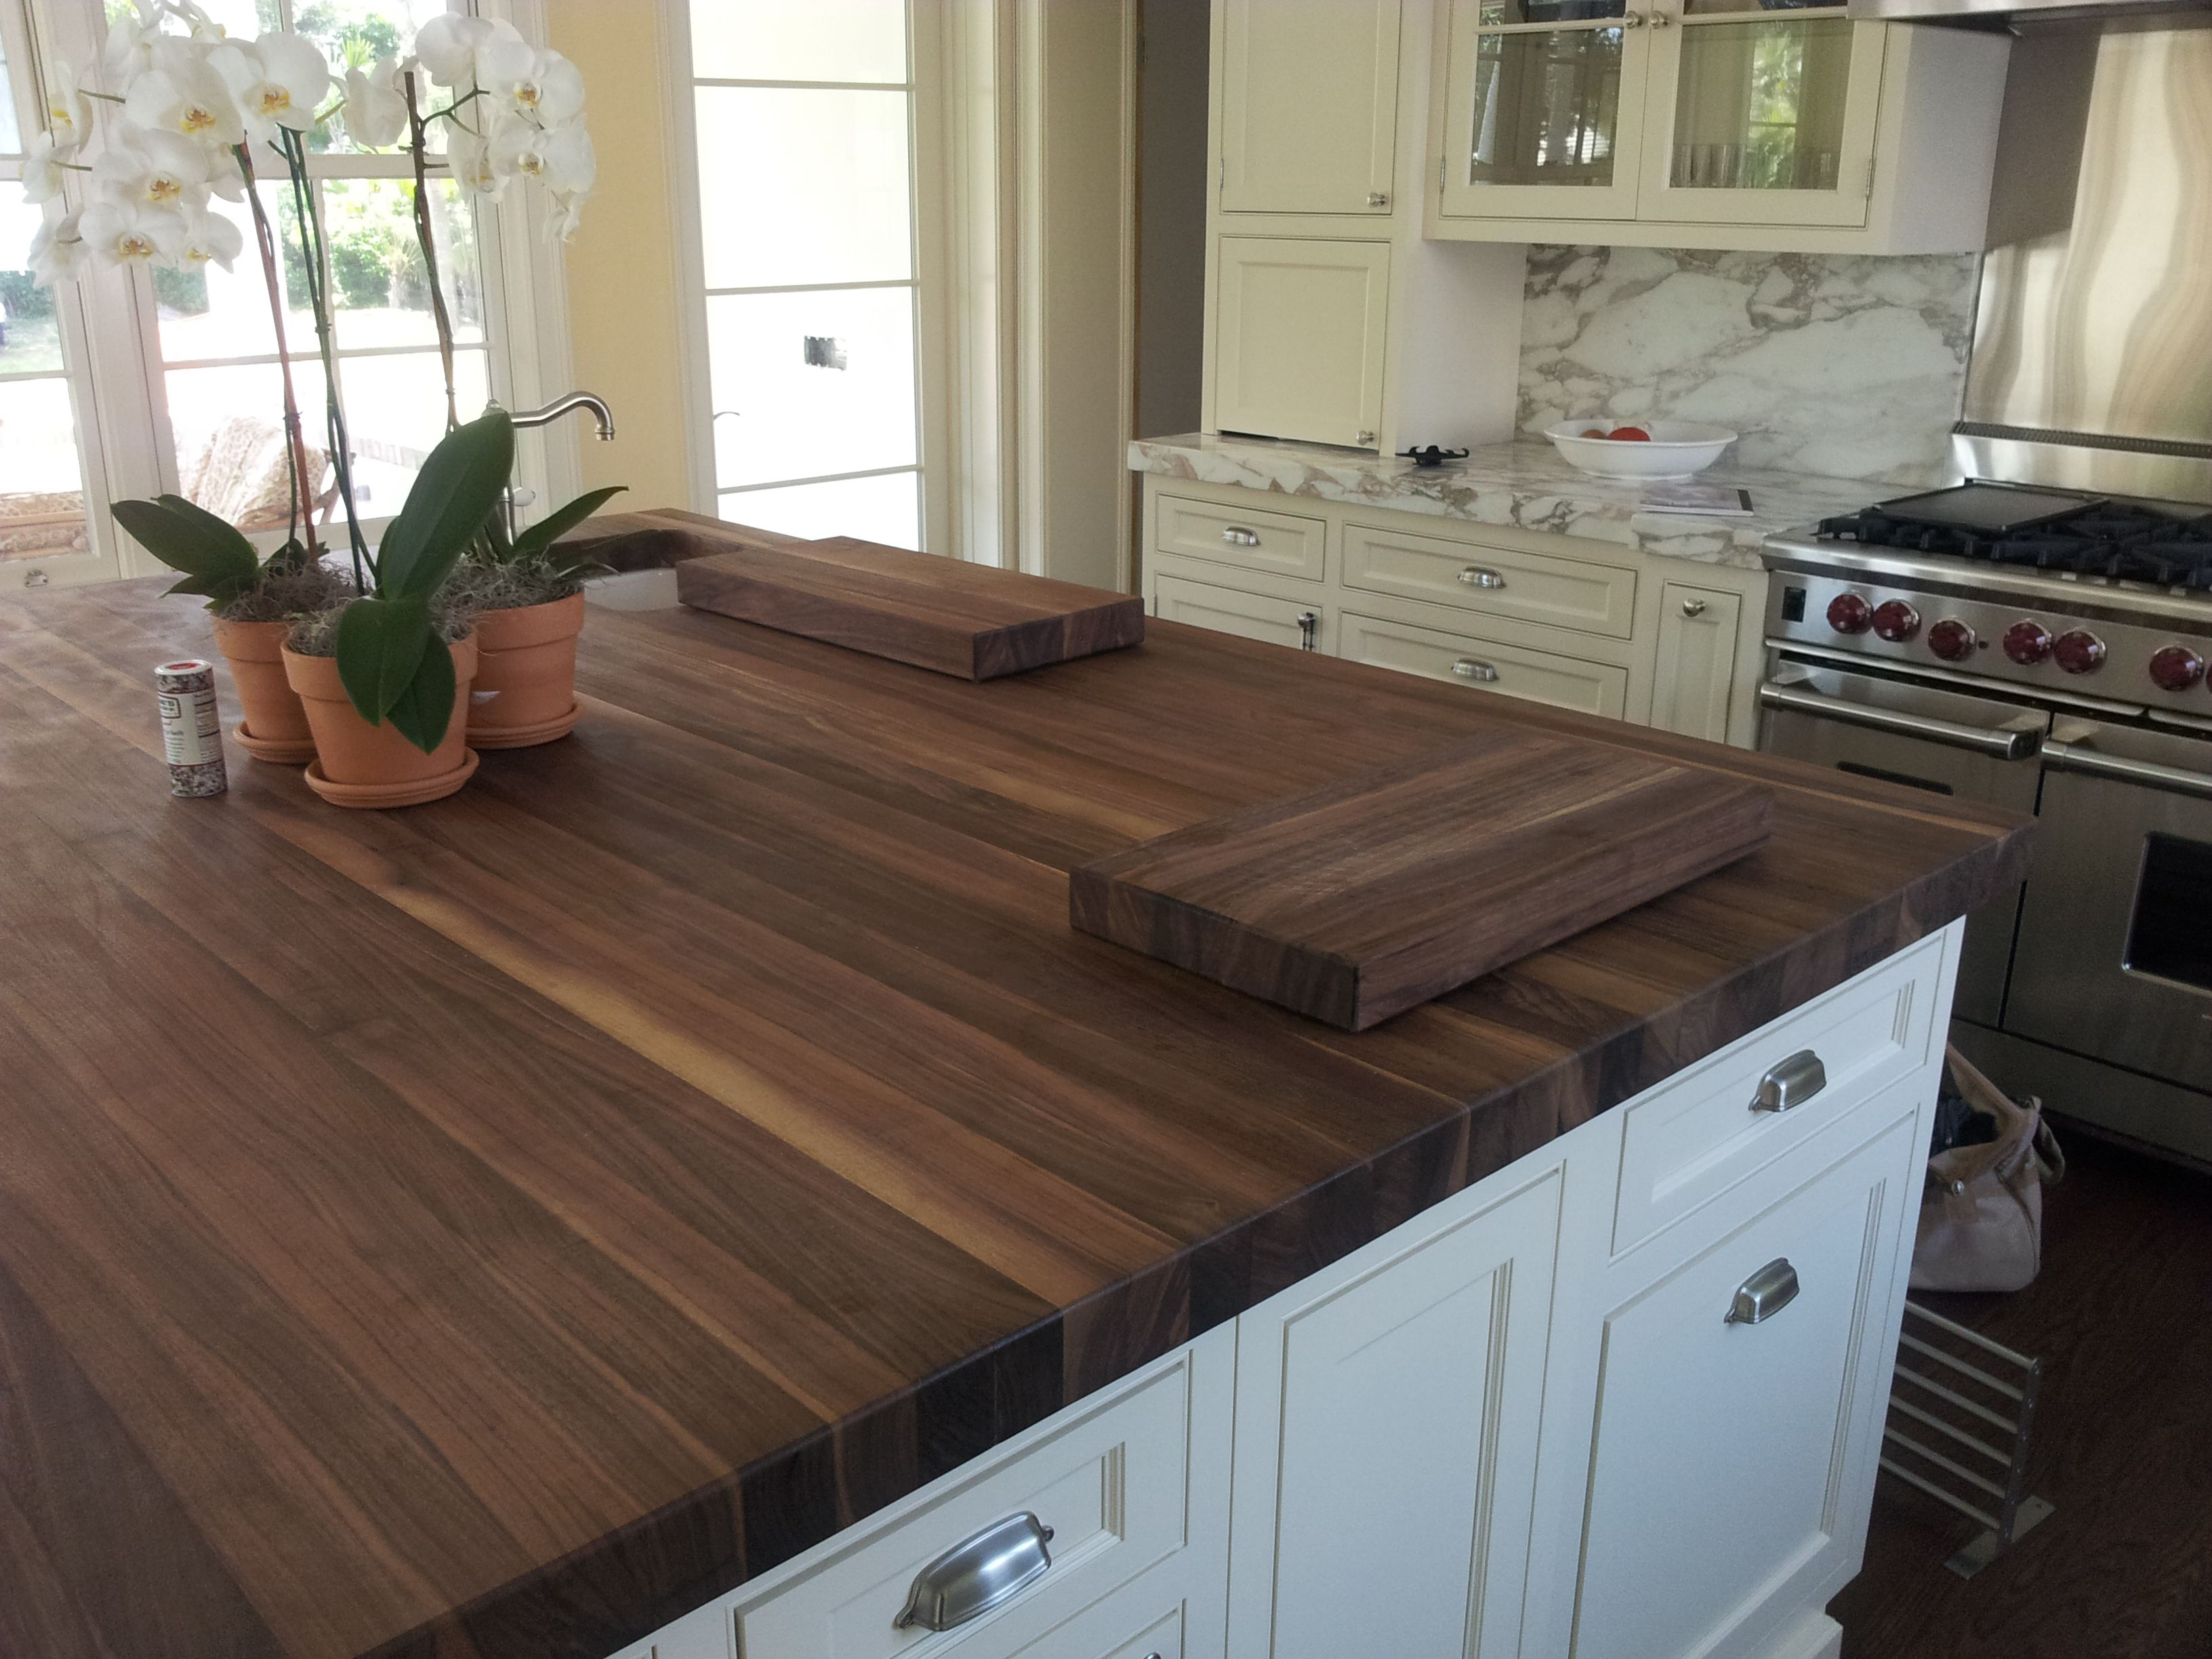 Best Place To Buy Butcher Block Countertops Dark Butcher Block Countertop With White Cabinets And